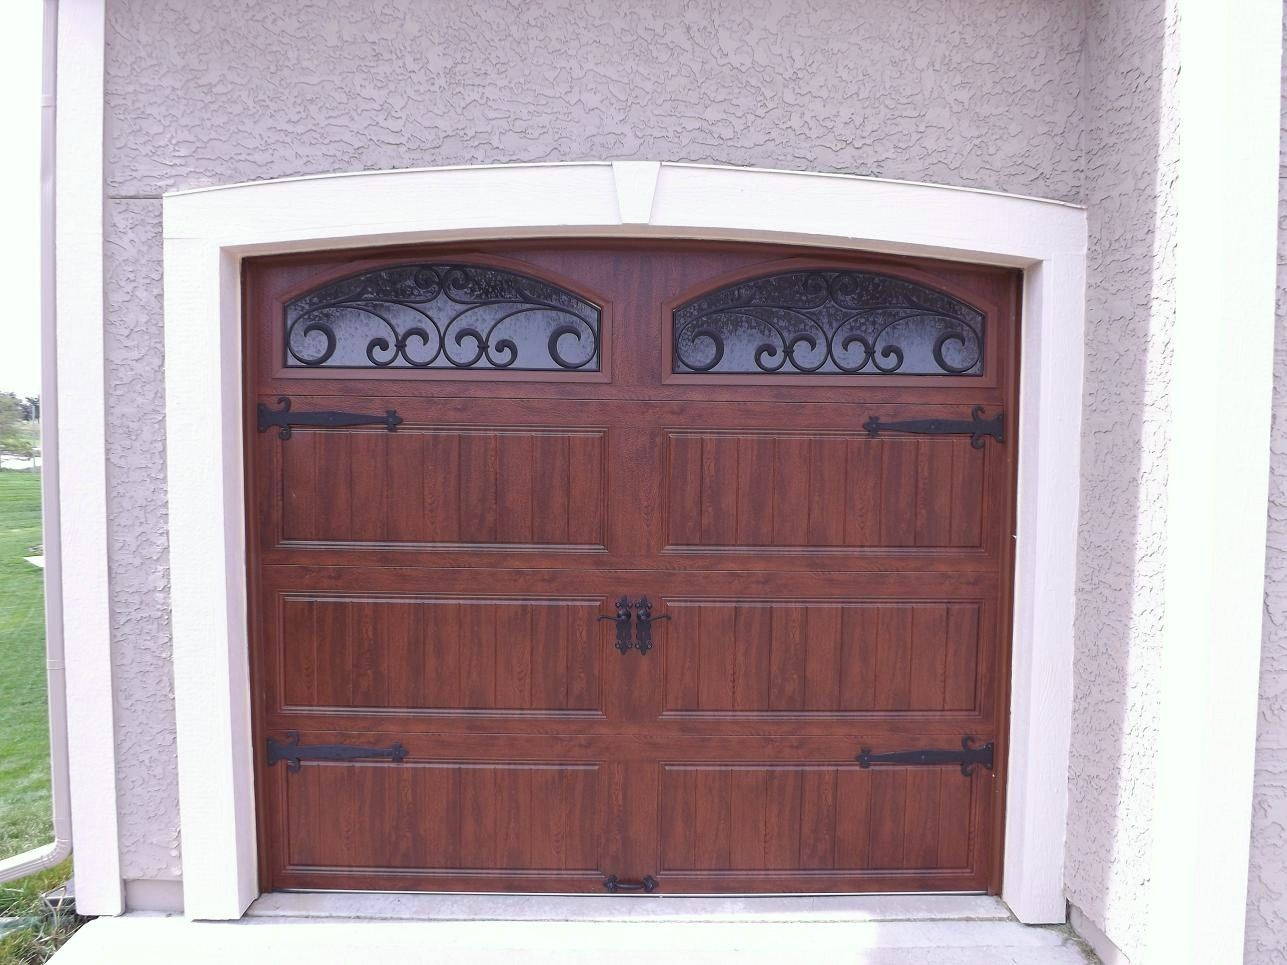 Clopay gallery collection steel garage door with ultra for Clopay wood garage doors